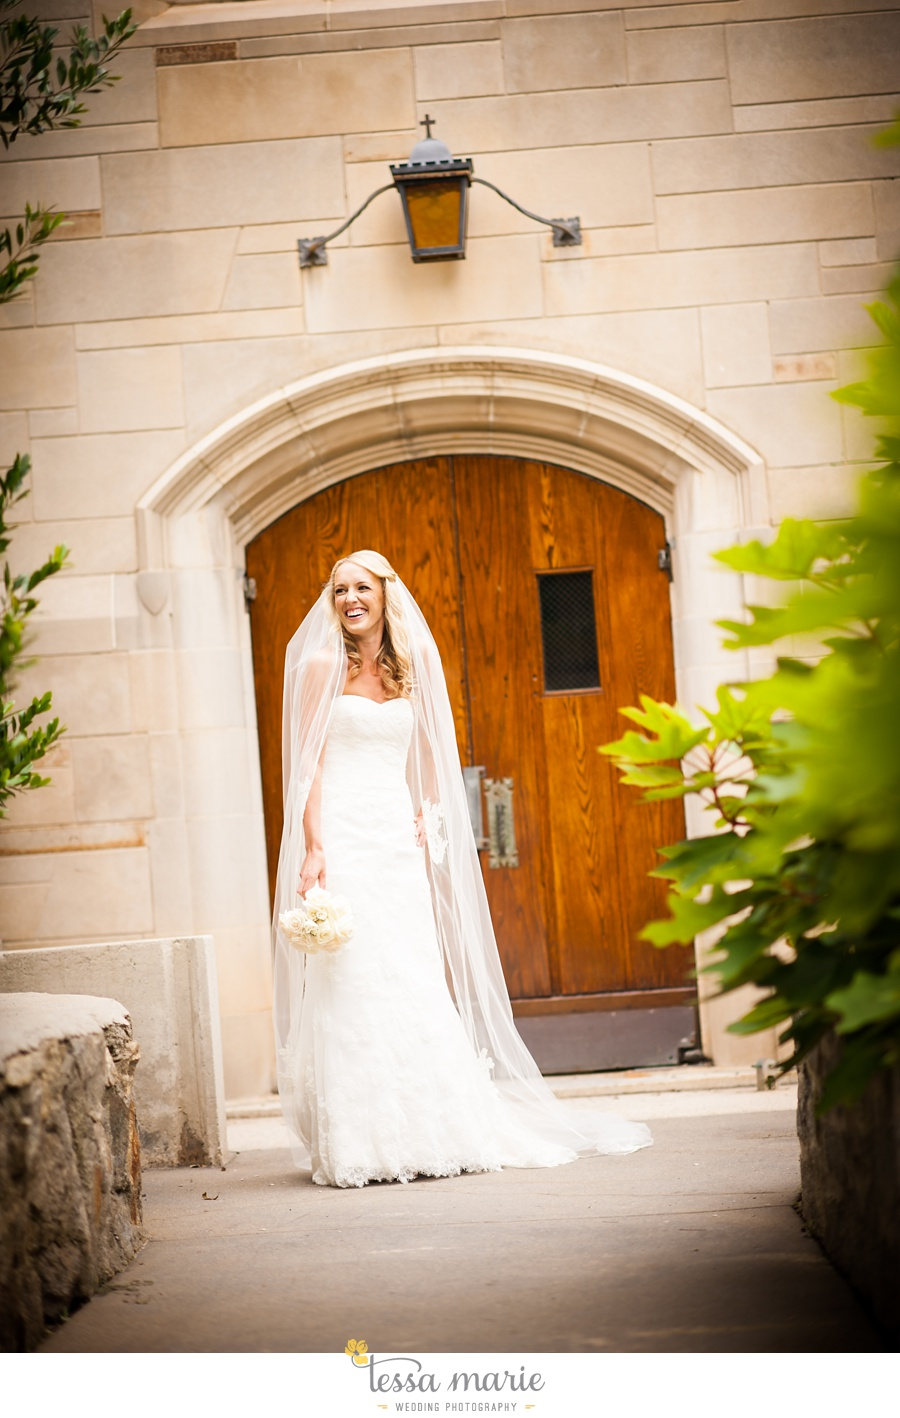 christ_the_king_wedding_pictures_Villa_christina_wedding_tessa_marie_weddings_0025